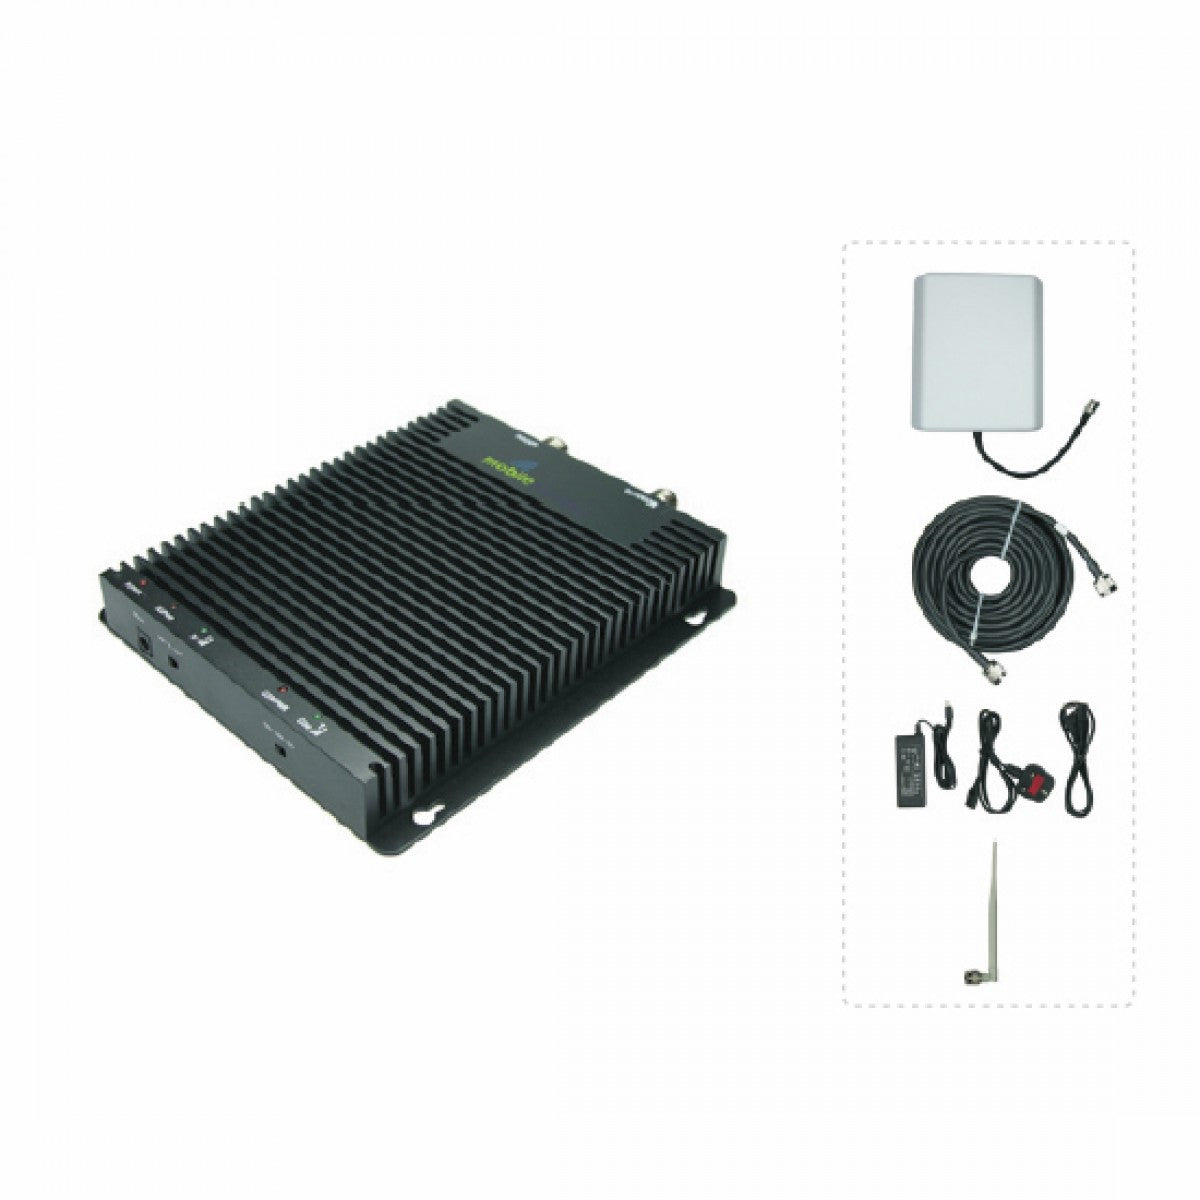 PowerMAX 900/1800 XT - Signal Booster South Africa  - 1